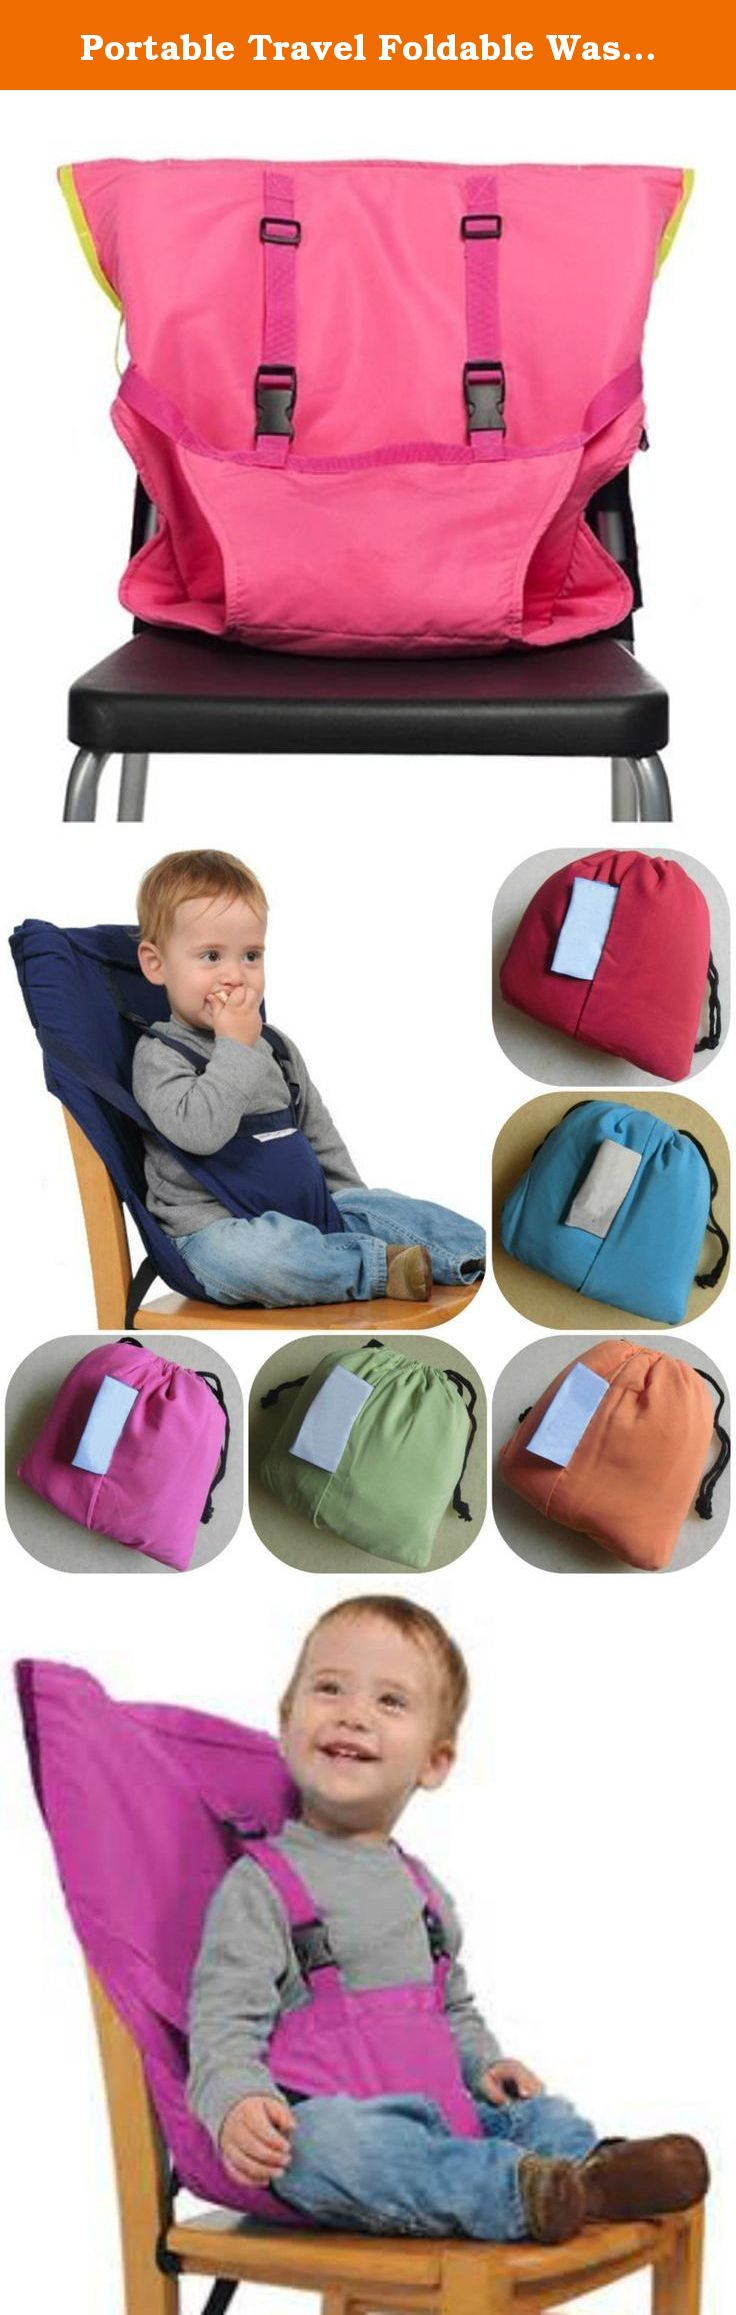 Portable Travel Foldable Washable Baby Infants Dining High